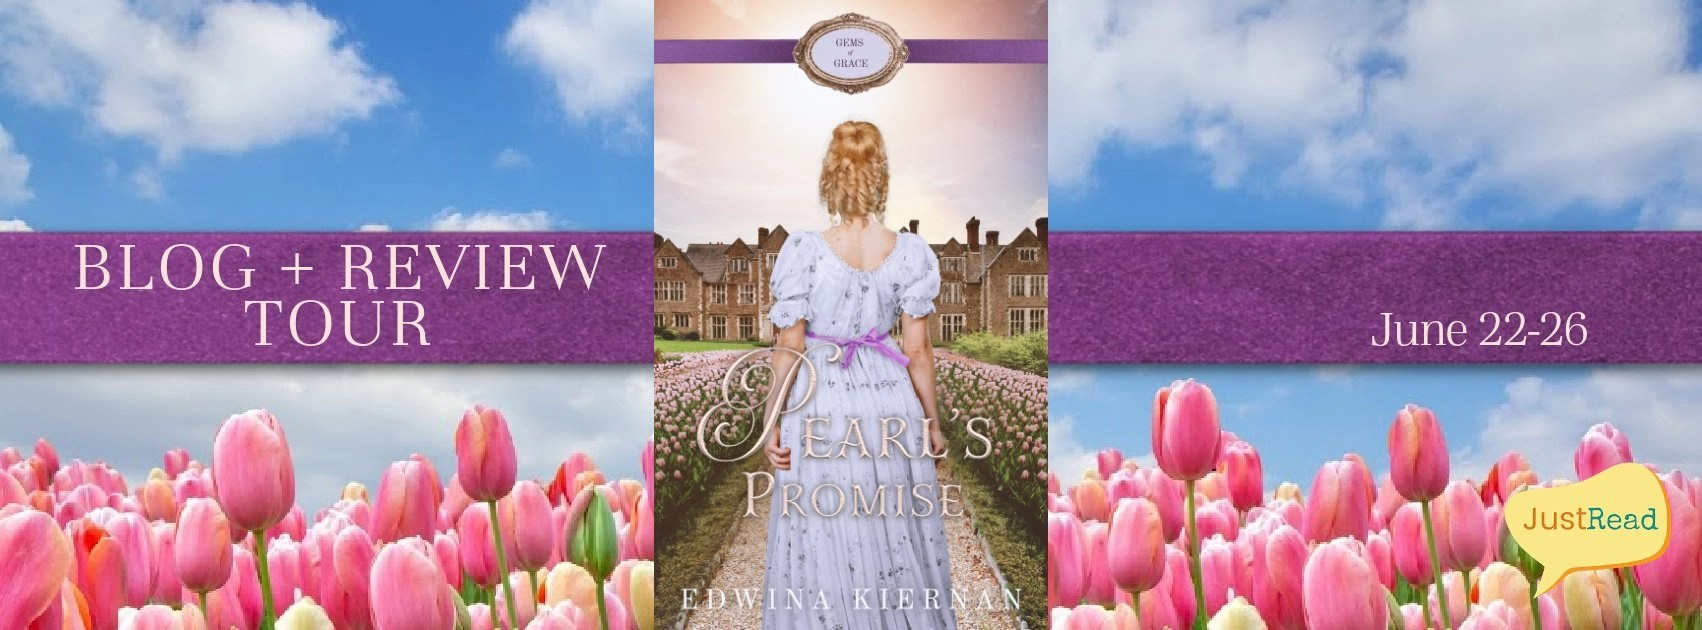 Welcome to the Pearl's Promise Blog + Review Tour & Giveaway!